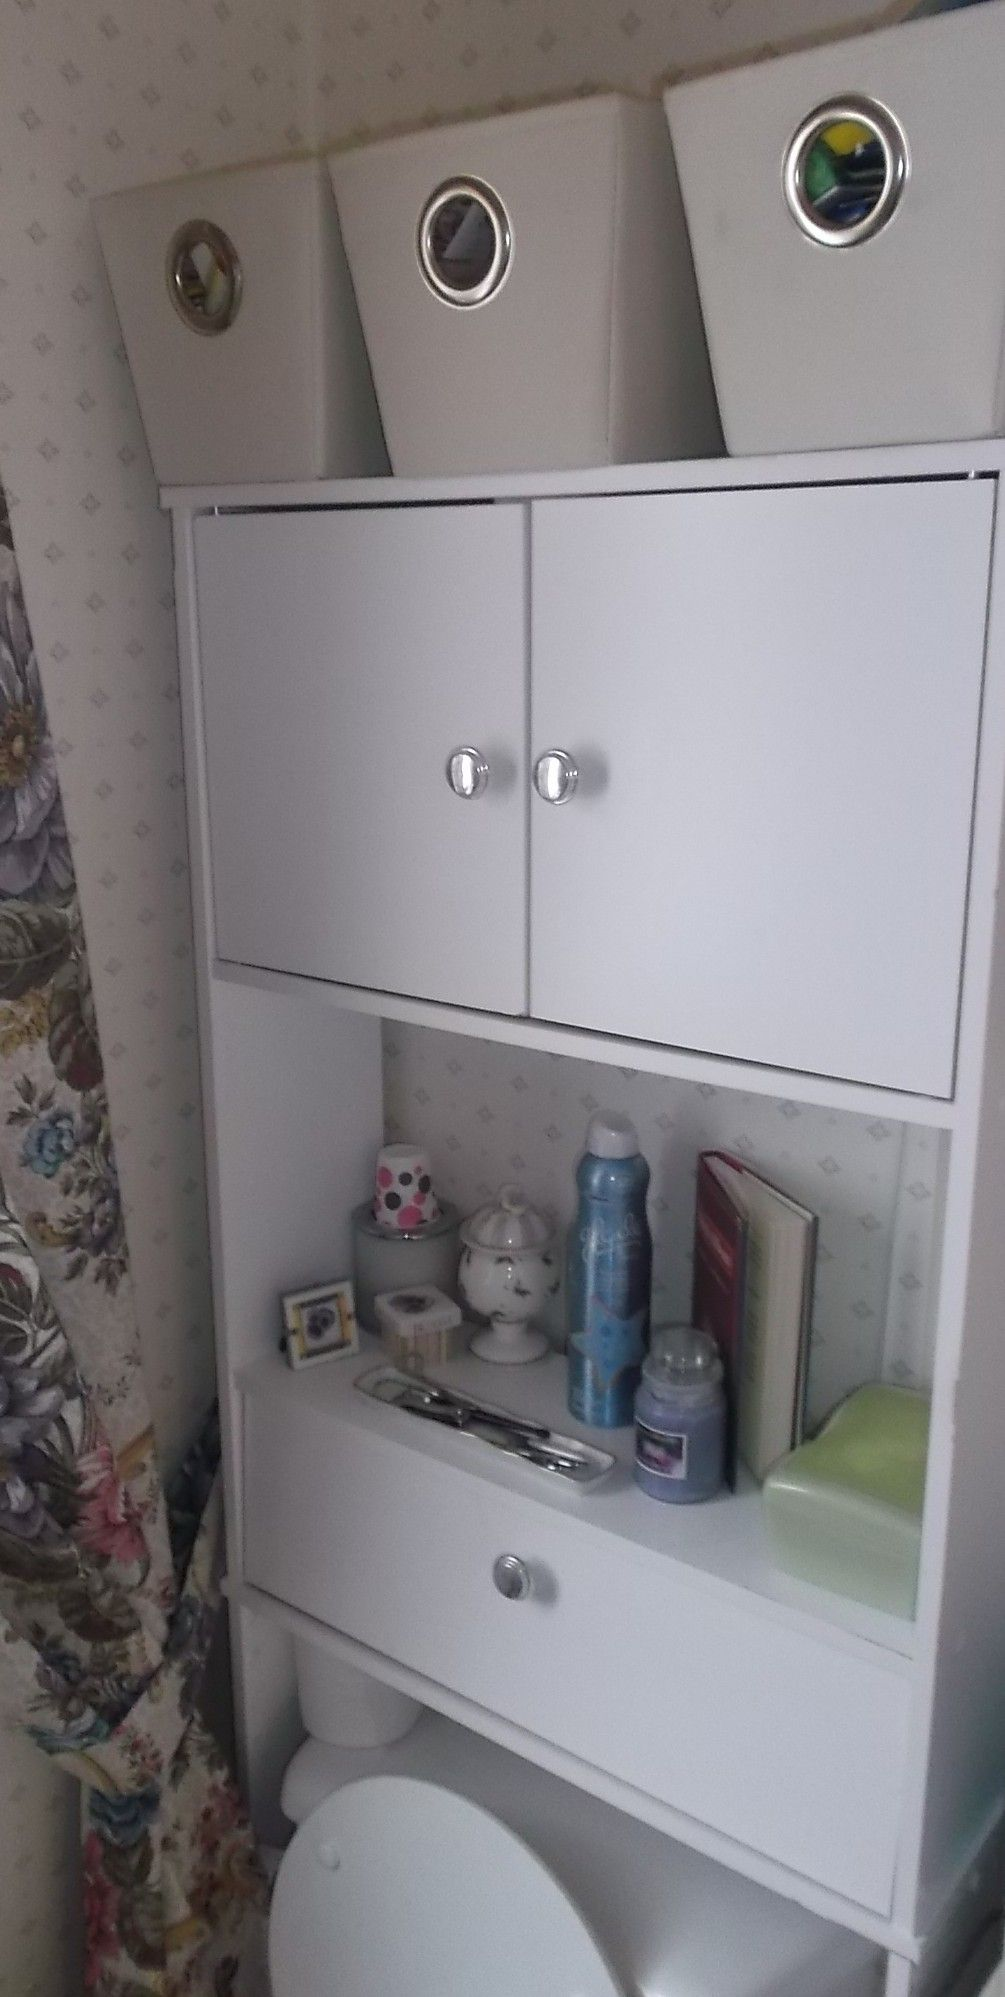 In a tiny bathroom without space/storage; use a